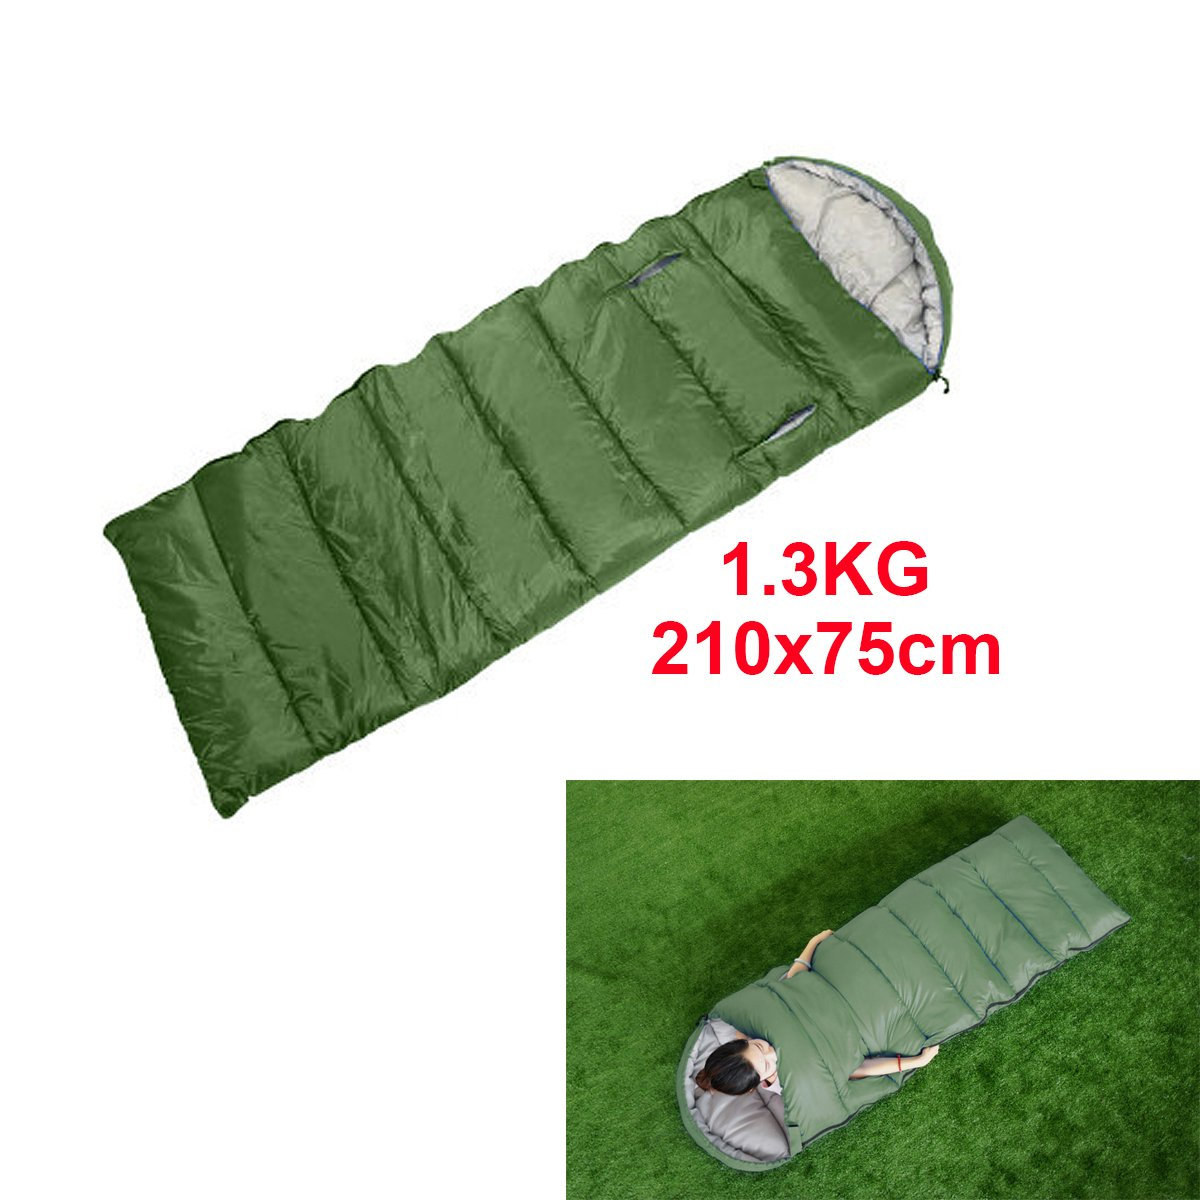 1.3KG(210*75CM) Camping Seeping Bags forest Envelope Sleeping Bag Single - 3 Season - Suitable for Adults and Kids Outdoor Camping - Lightweight, Compact and Water Resistant - High Quality for a Comfortable Warm Sleep(Green) CMYKZONE